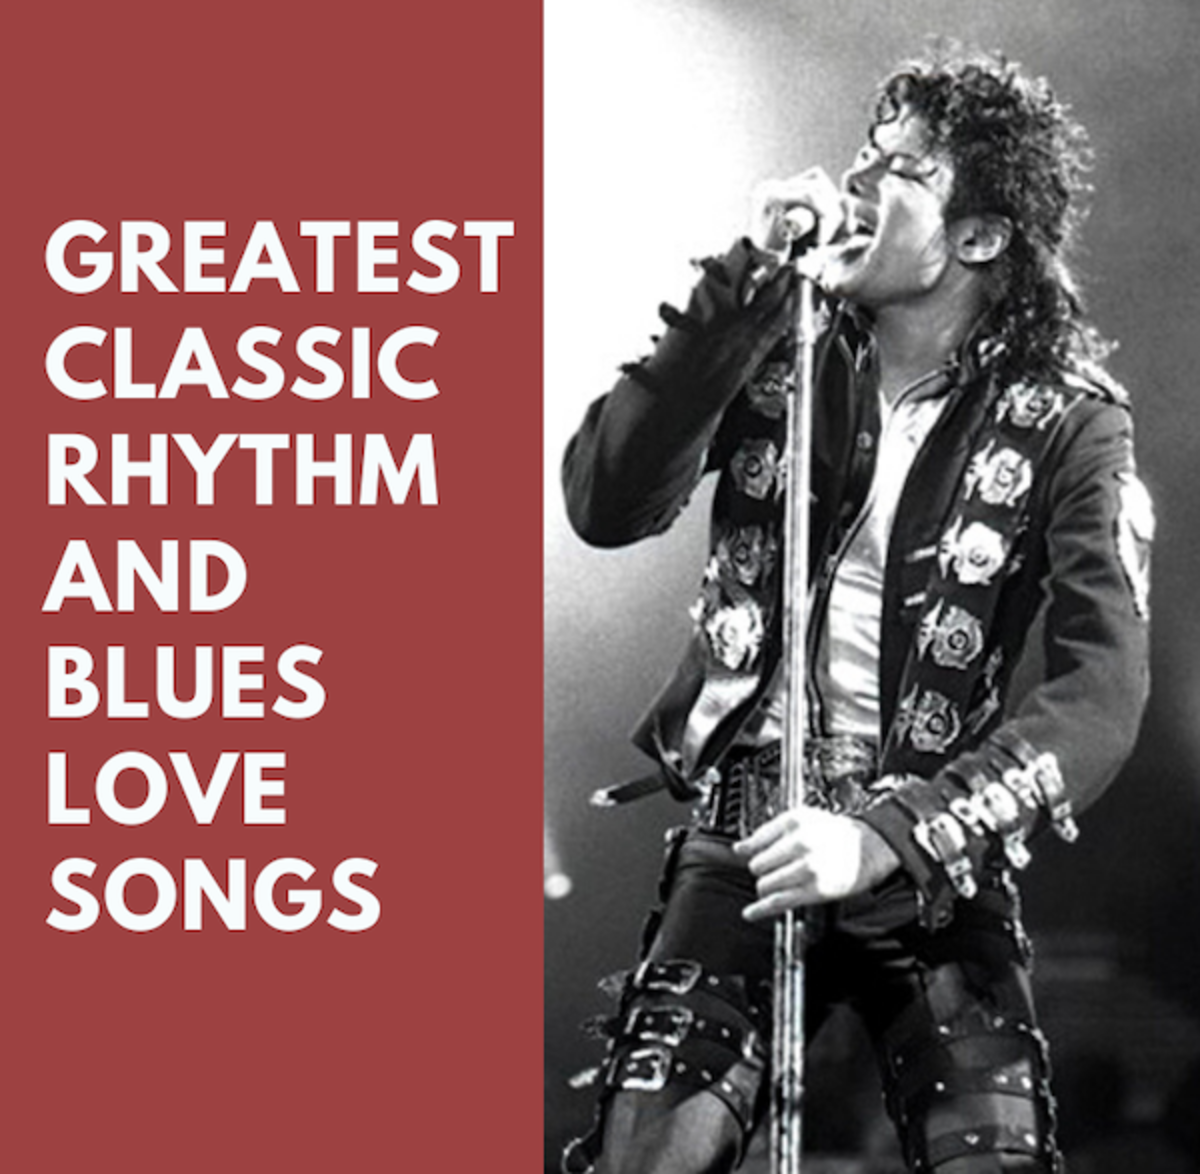 Ten Greatest Classic Rhythm and Blues Love Songs